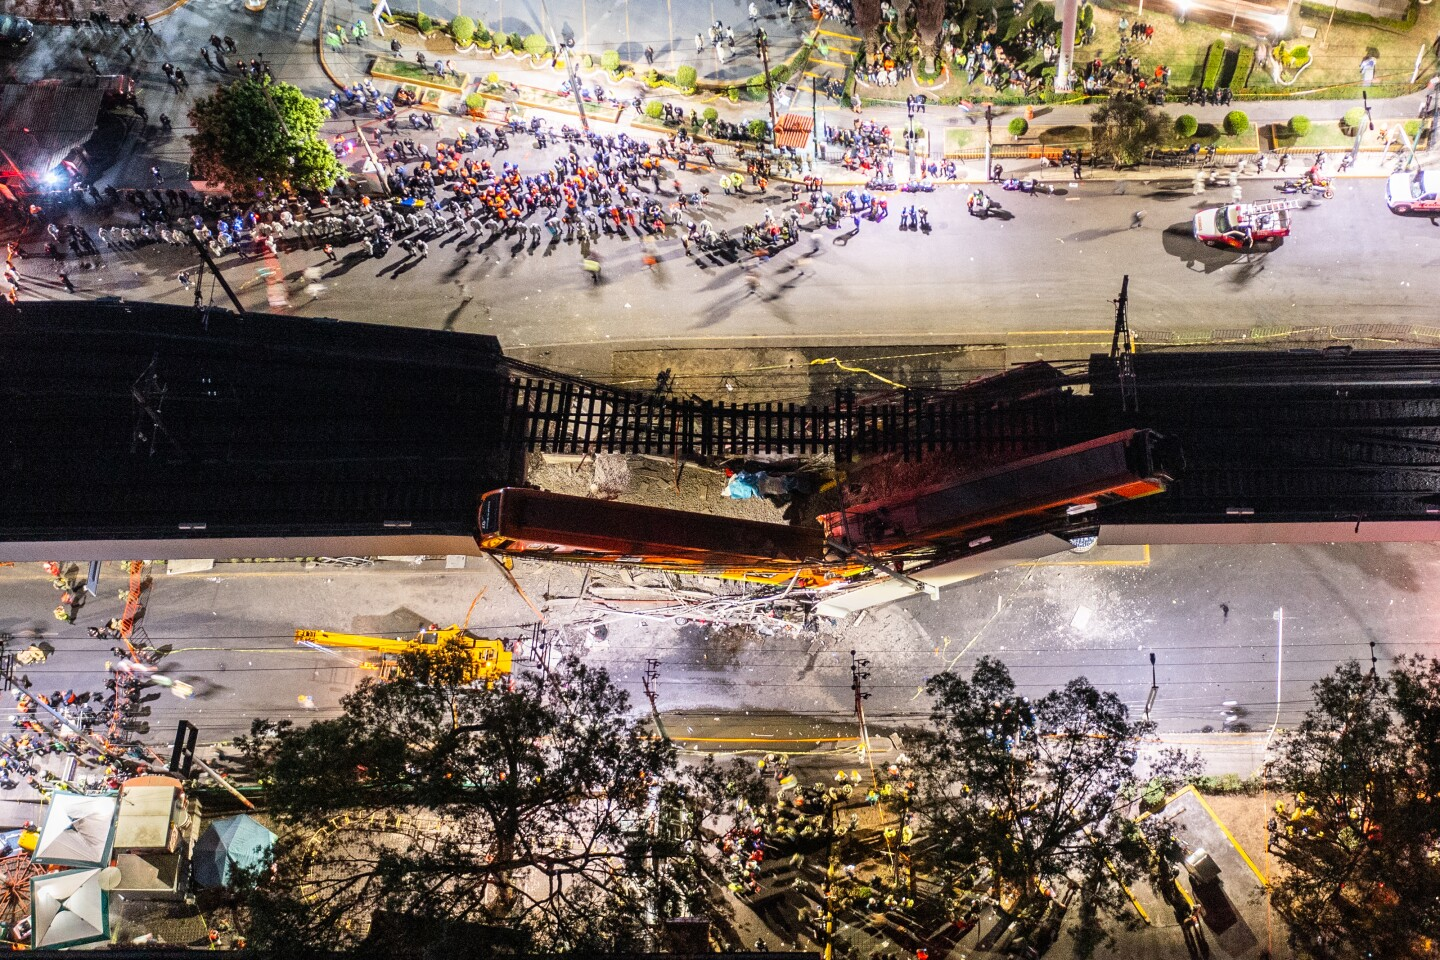 MEXICO CITY, MEXICO - MAY 03: An aerial view of the scene after an elevated section of metro track in Mexico City, carrying train cars with passengers, collapsed onto a busy road on May 03, 2021 in Mexico City, Mexico. The Line 12 accident happened as the metro train was traveling between Olivos and Tezonco Metro stations, reportedly killing at least 20 people and injuring further 70. (Photo by Hector Vivas/Getty Images)